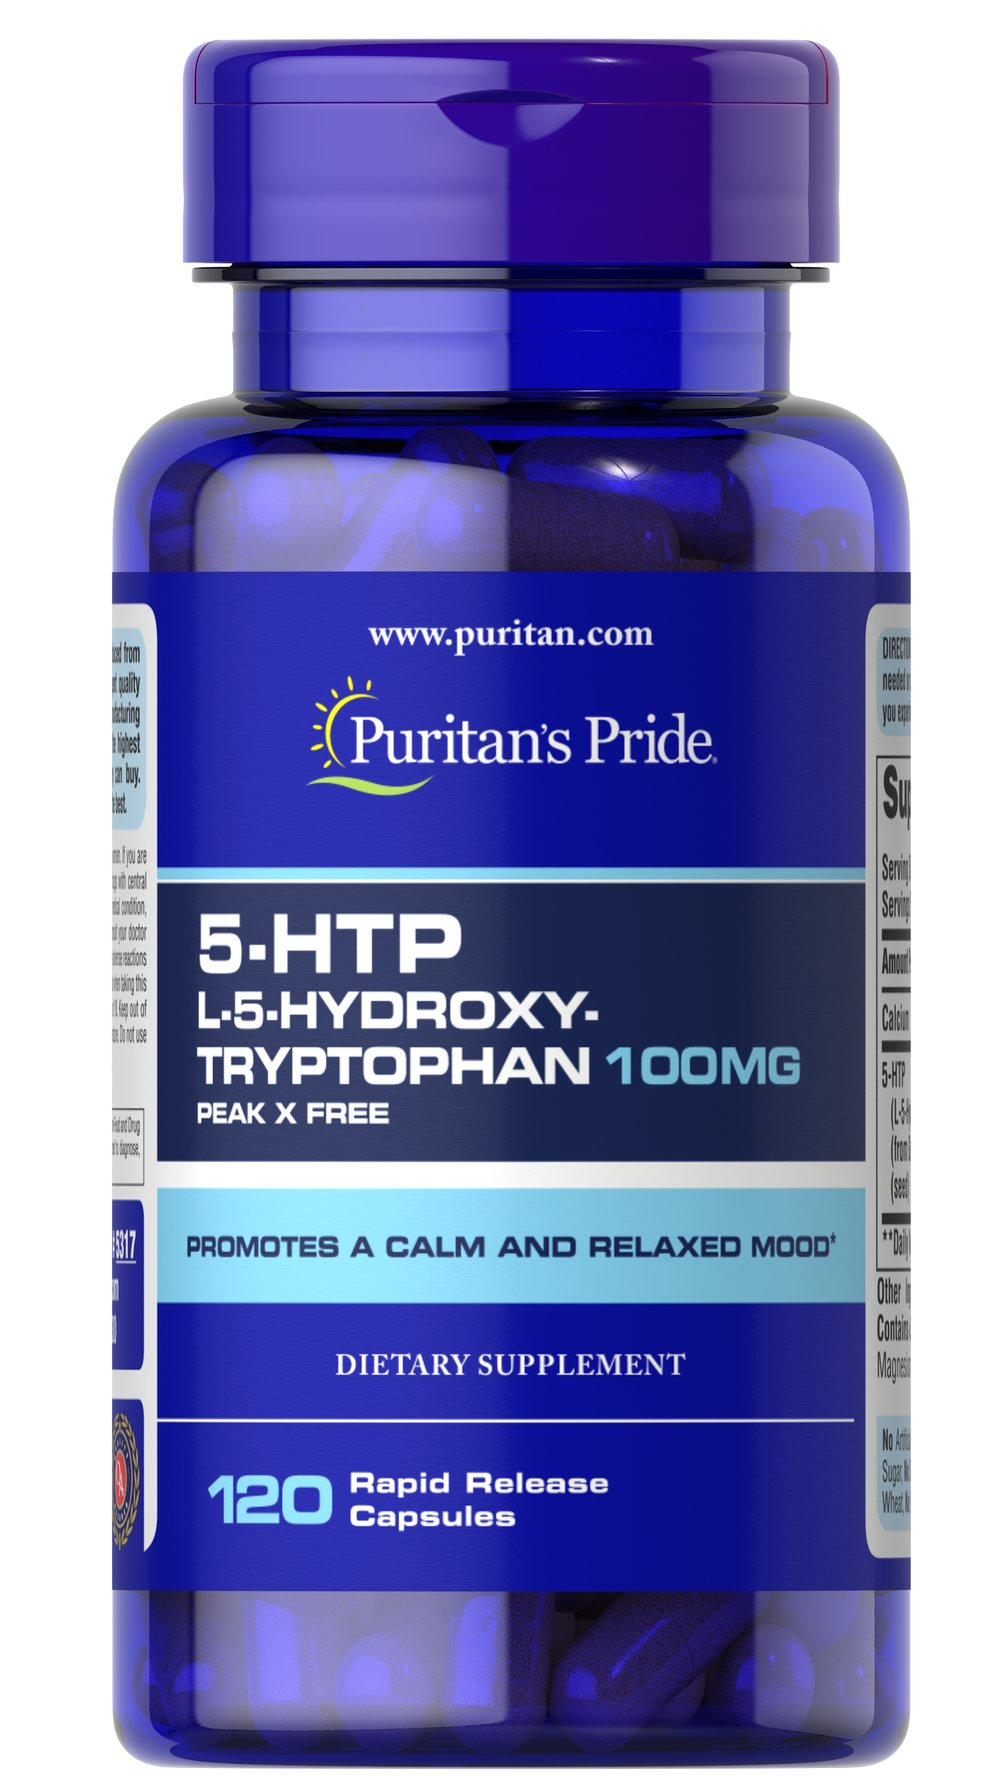 5-HTP 100 mg (Griffonia Simplicifolia) <p>5-HTP is a precursor to serotonin, a neurotransmitter involved in sending messages through the nervous system. This formula also includes B vitamins to promote nervous system health and the herb, Valerian.** Adults can take one capsule twice daily as needed or before bedtime.</p>  120 Capsules 100 mg $35.99